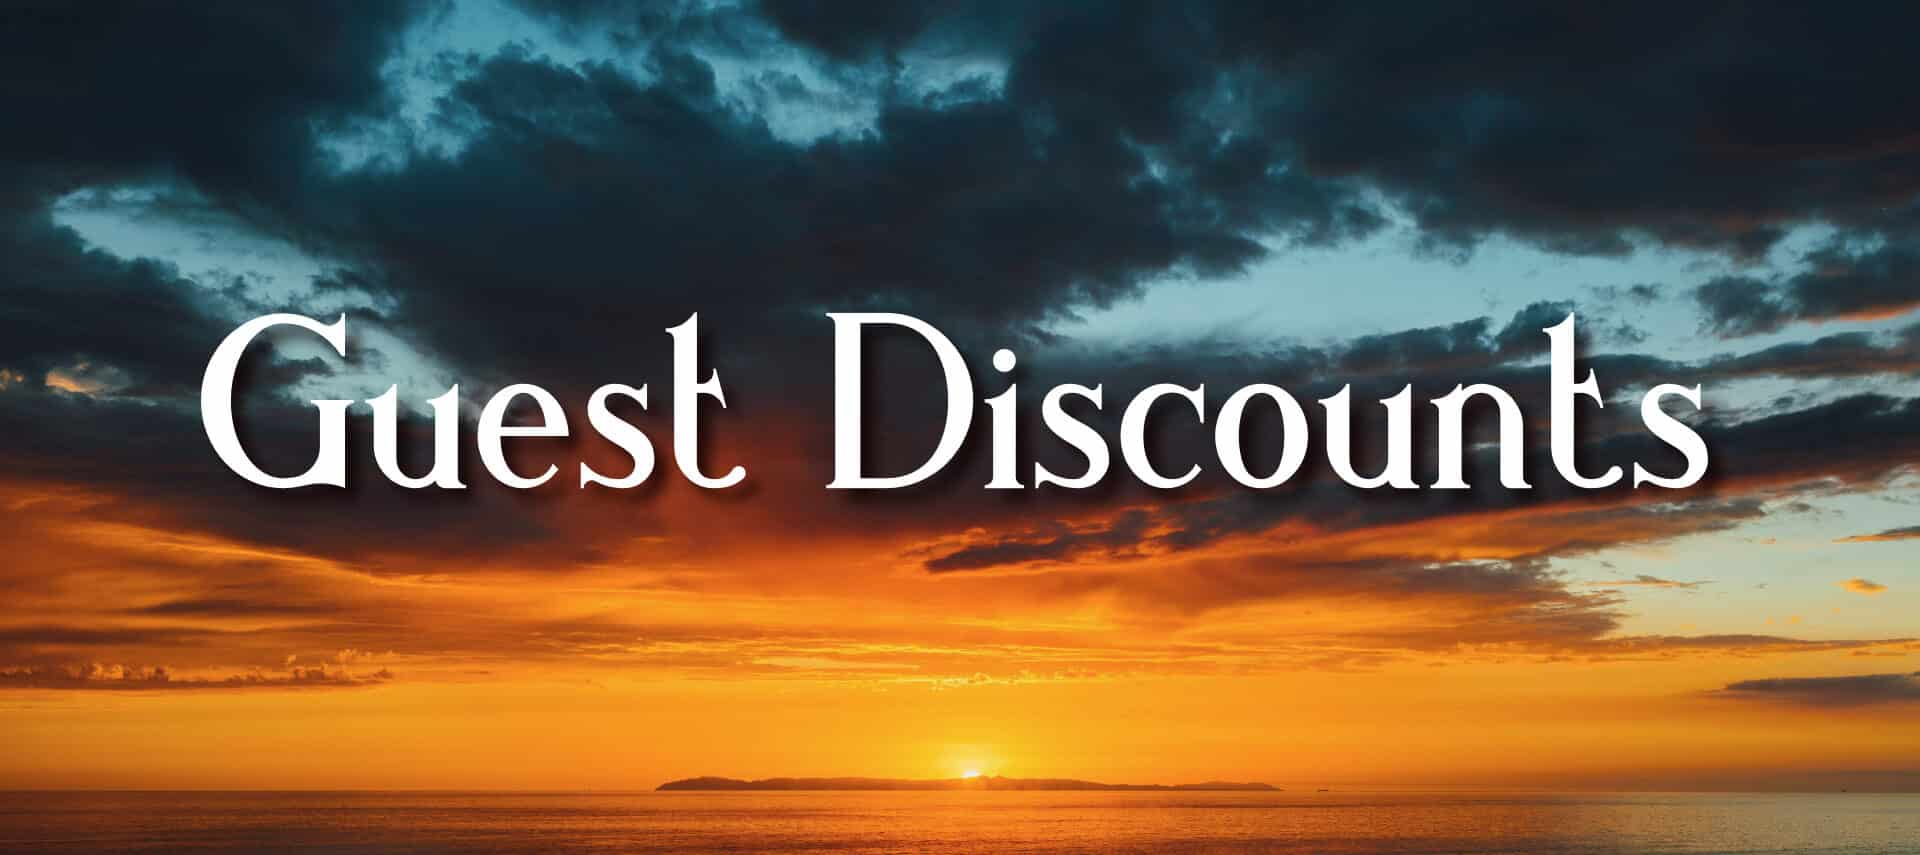 Sunset with orange and dark blue sky over ocean and small island background with text Guest Discounts in white